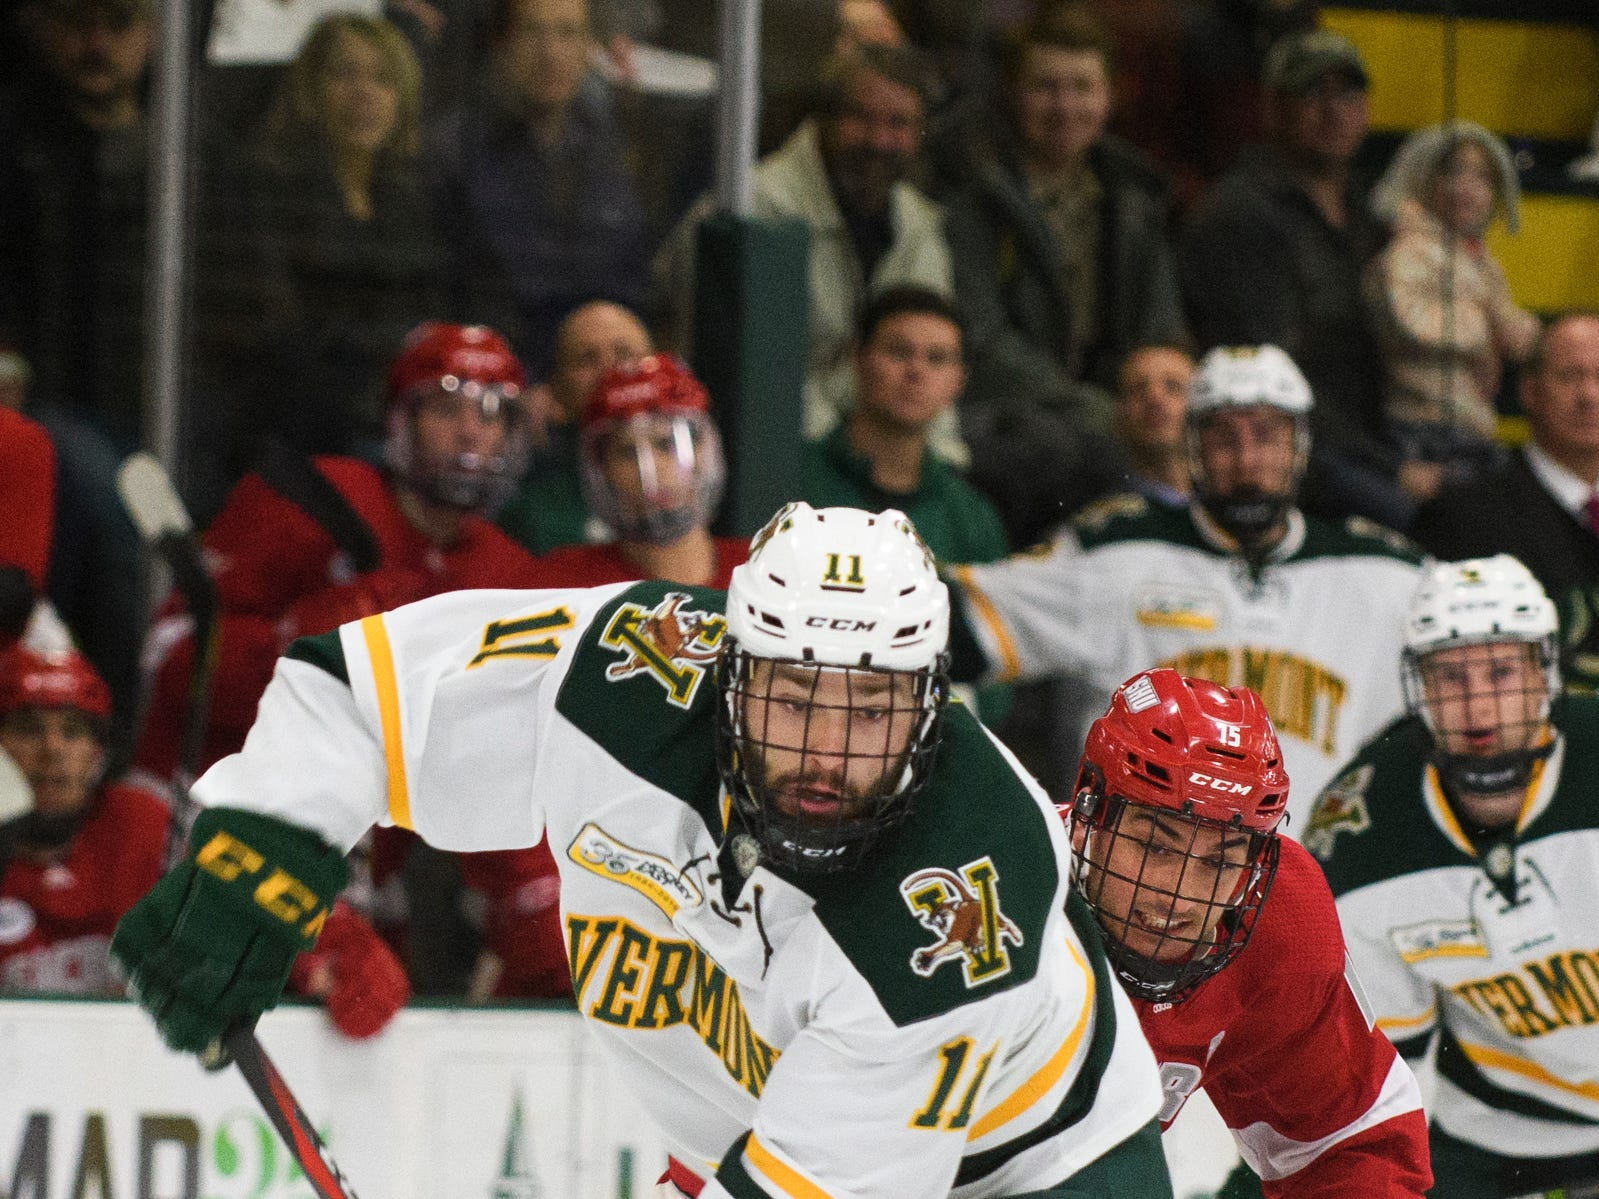 Vermont forward Conor O'Neil (11) skates with the puck during the men's hockey game between the Sacred Heart Pioneers and the Vermont Catamounts at Gutterson Field House on Friday night January 4, 2019 in Burlington.